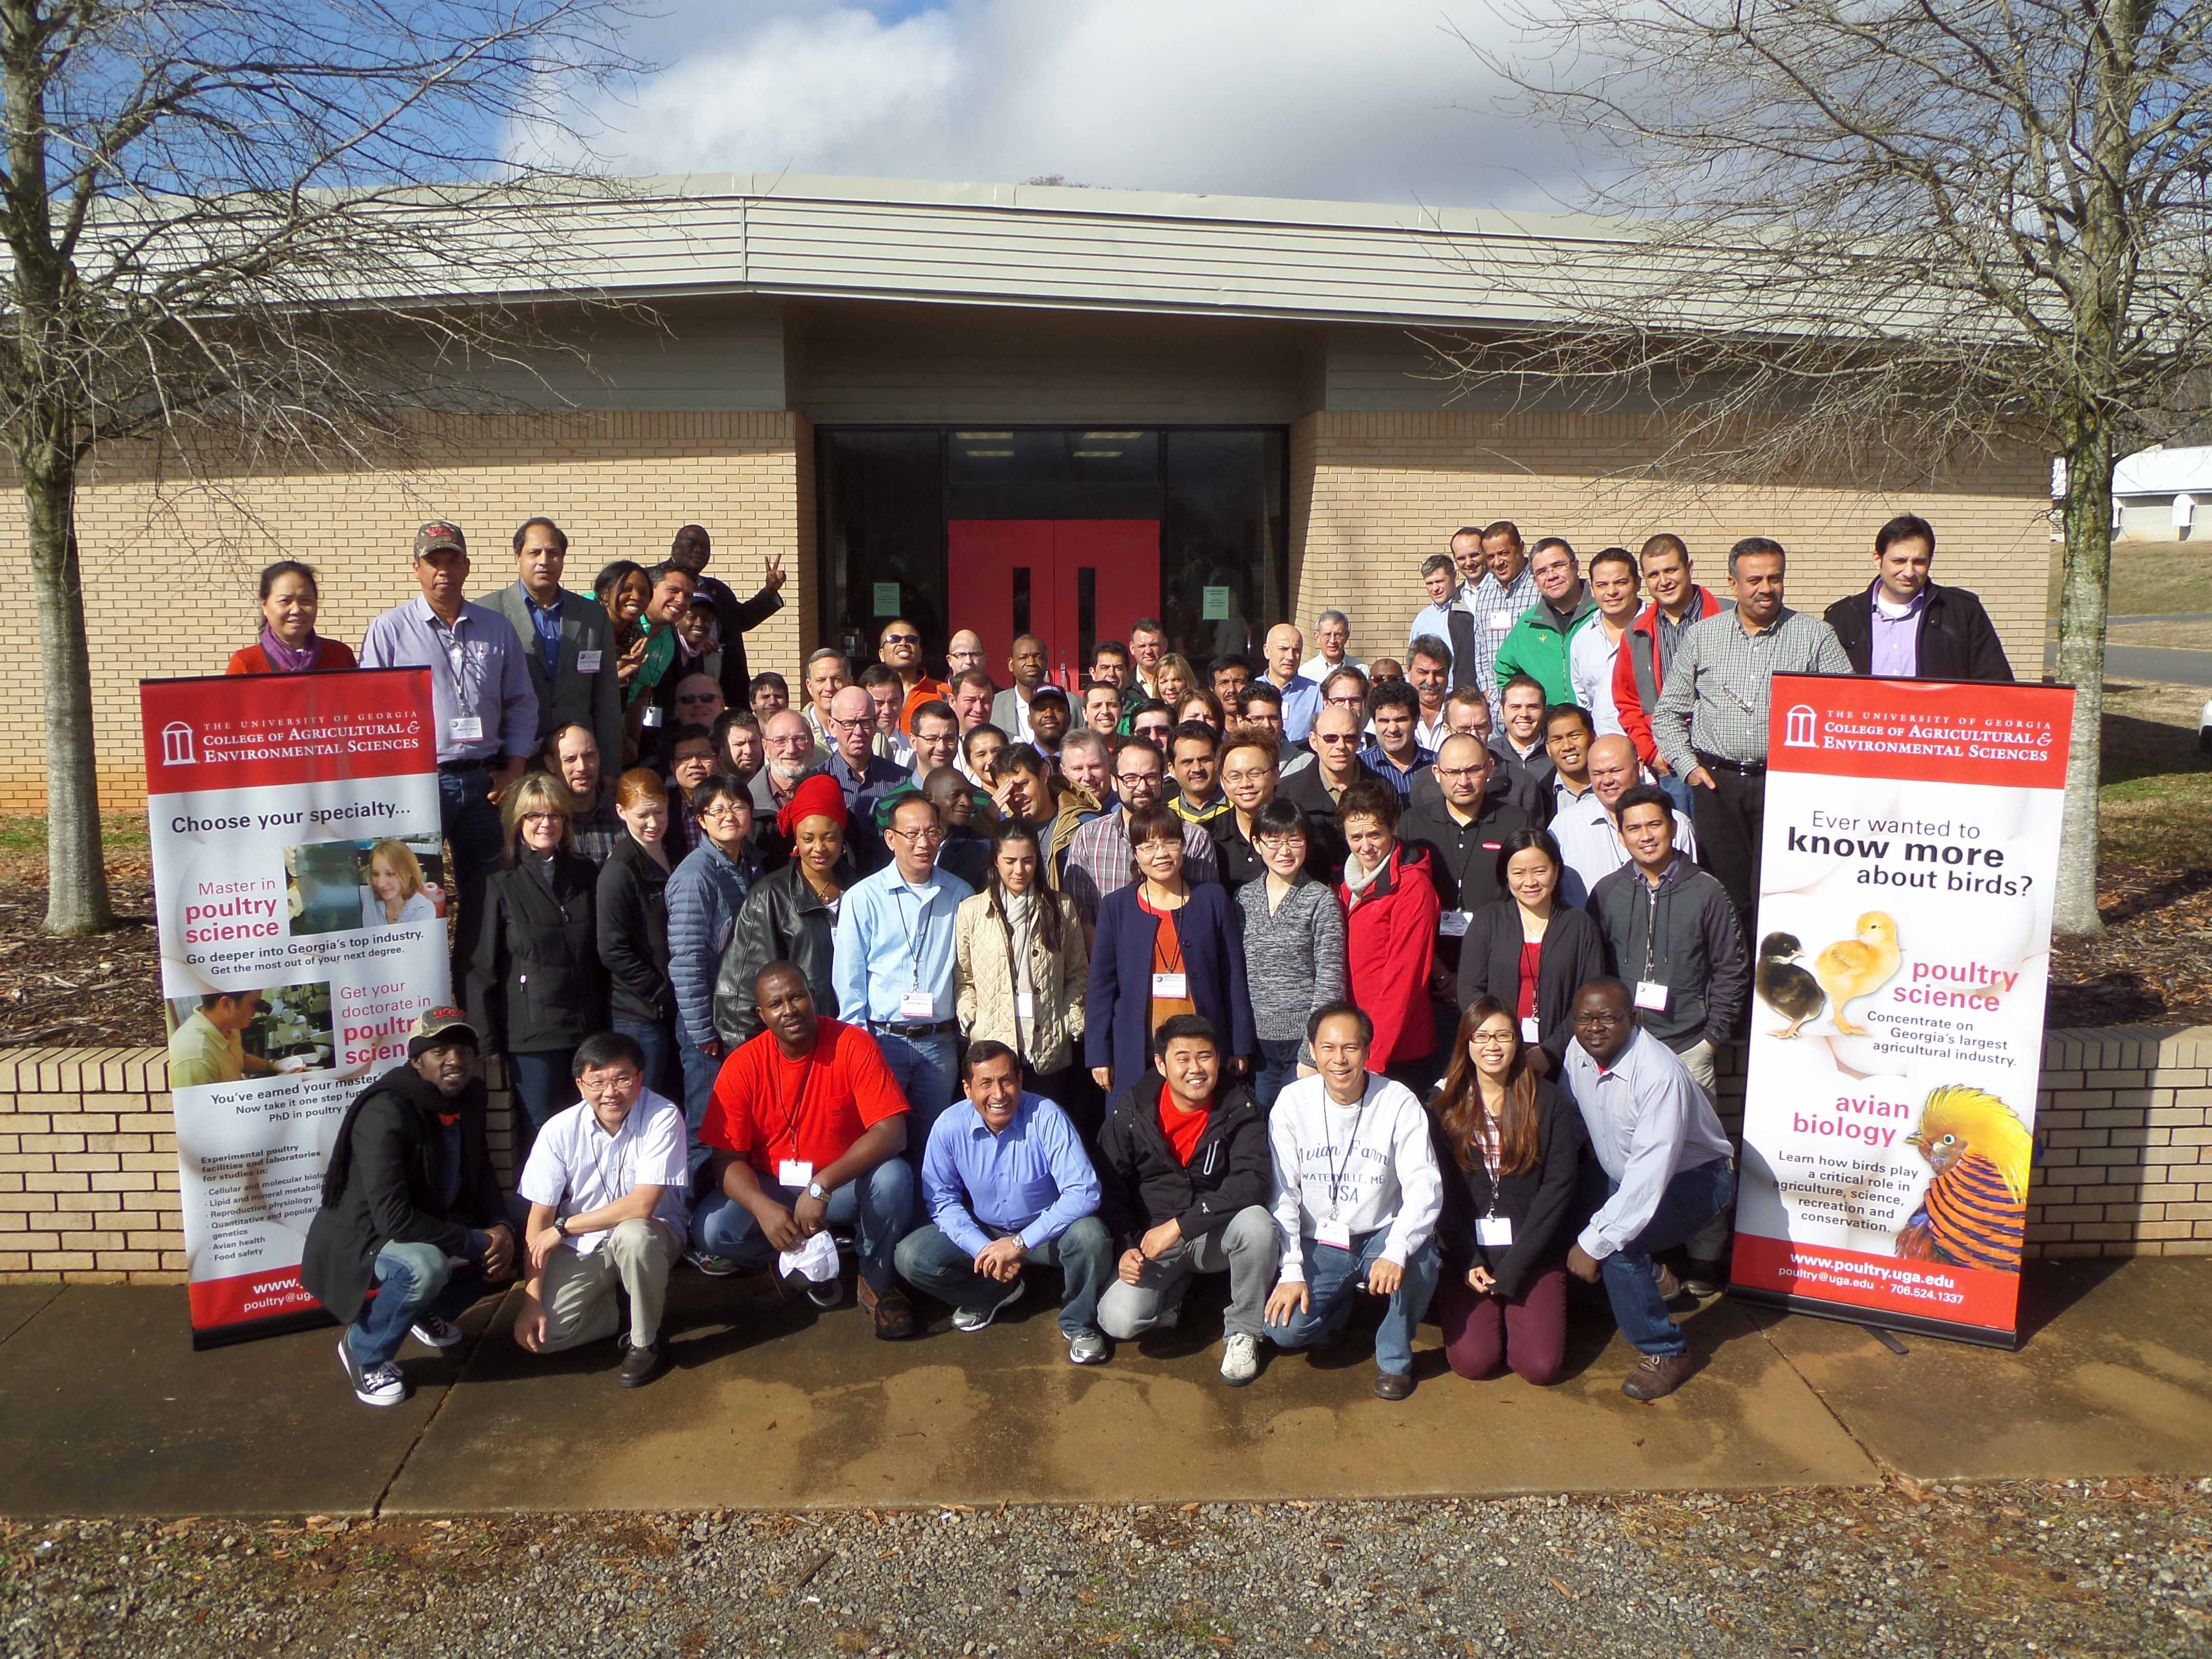 More than 70 poultry farmers and scientists from around the world and the U.S. flocked to Georgia this week for the UGA Department of Poultry Sciences International Short Course.